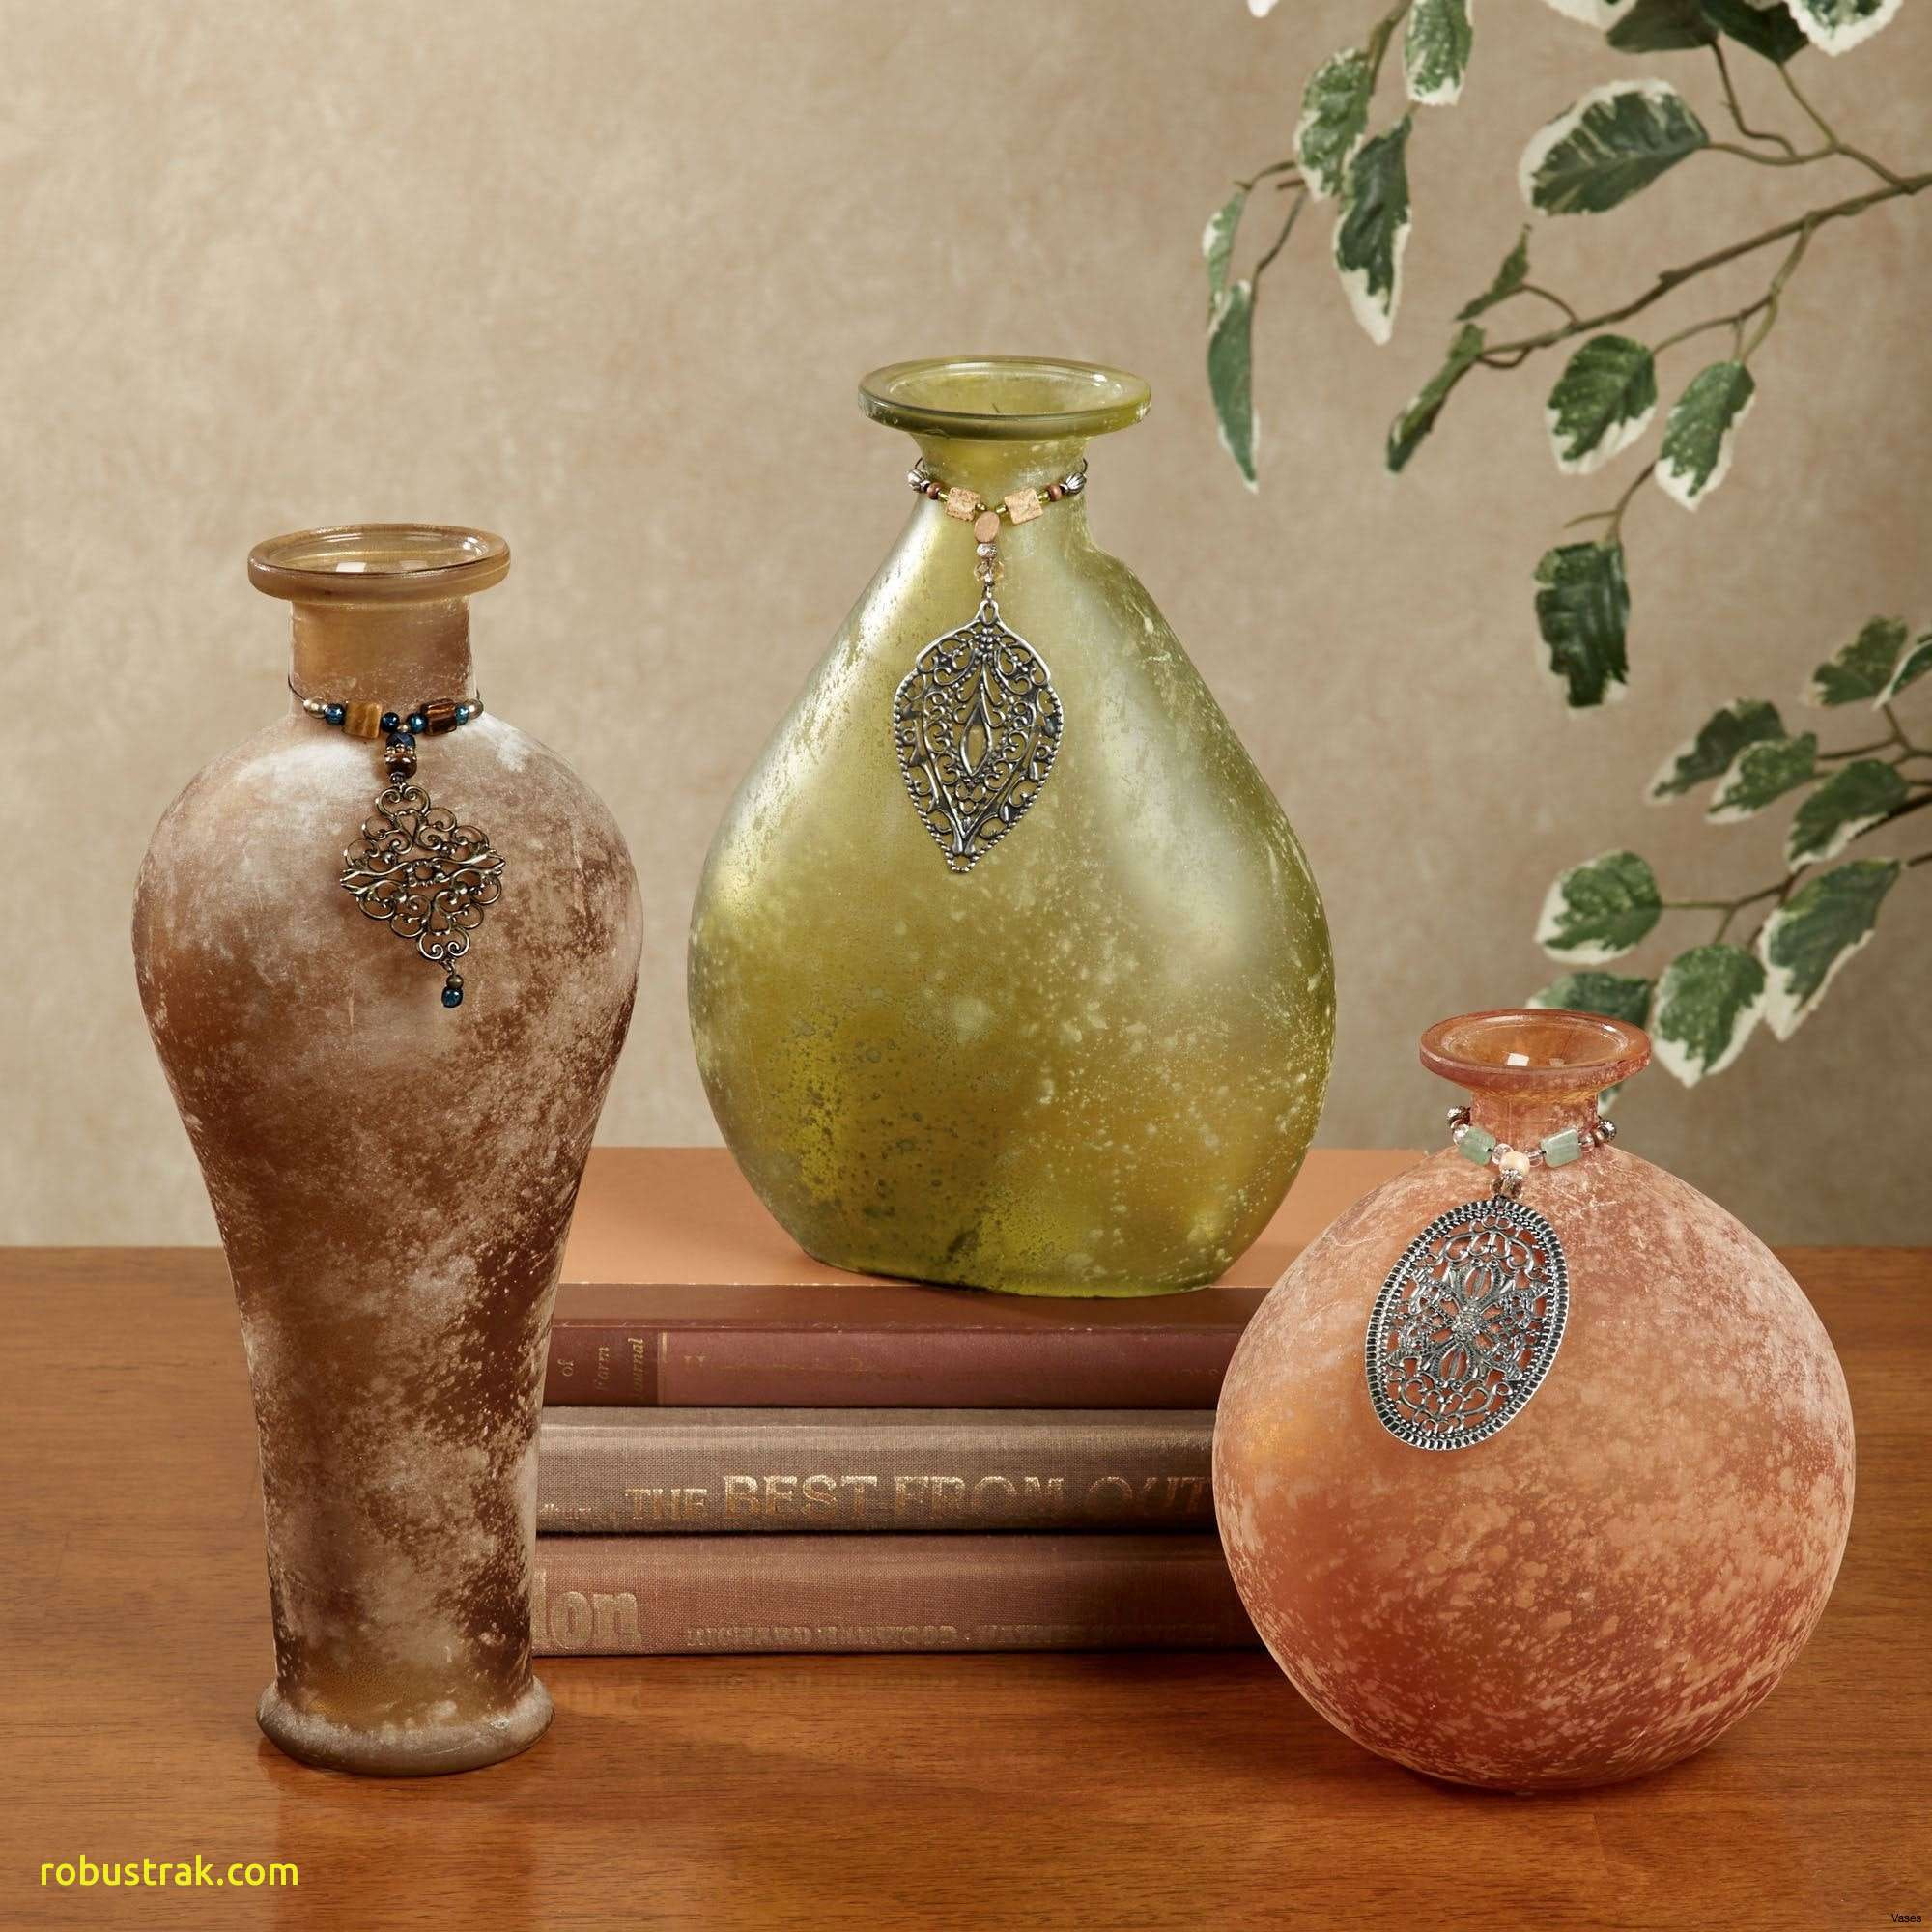 pottery vase designs of awesome decorative vases for living room home design ideas regarding 2015 new promotion s floor vase decorativeh vases decorative set flower vasos decorativos modern fashion brief